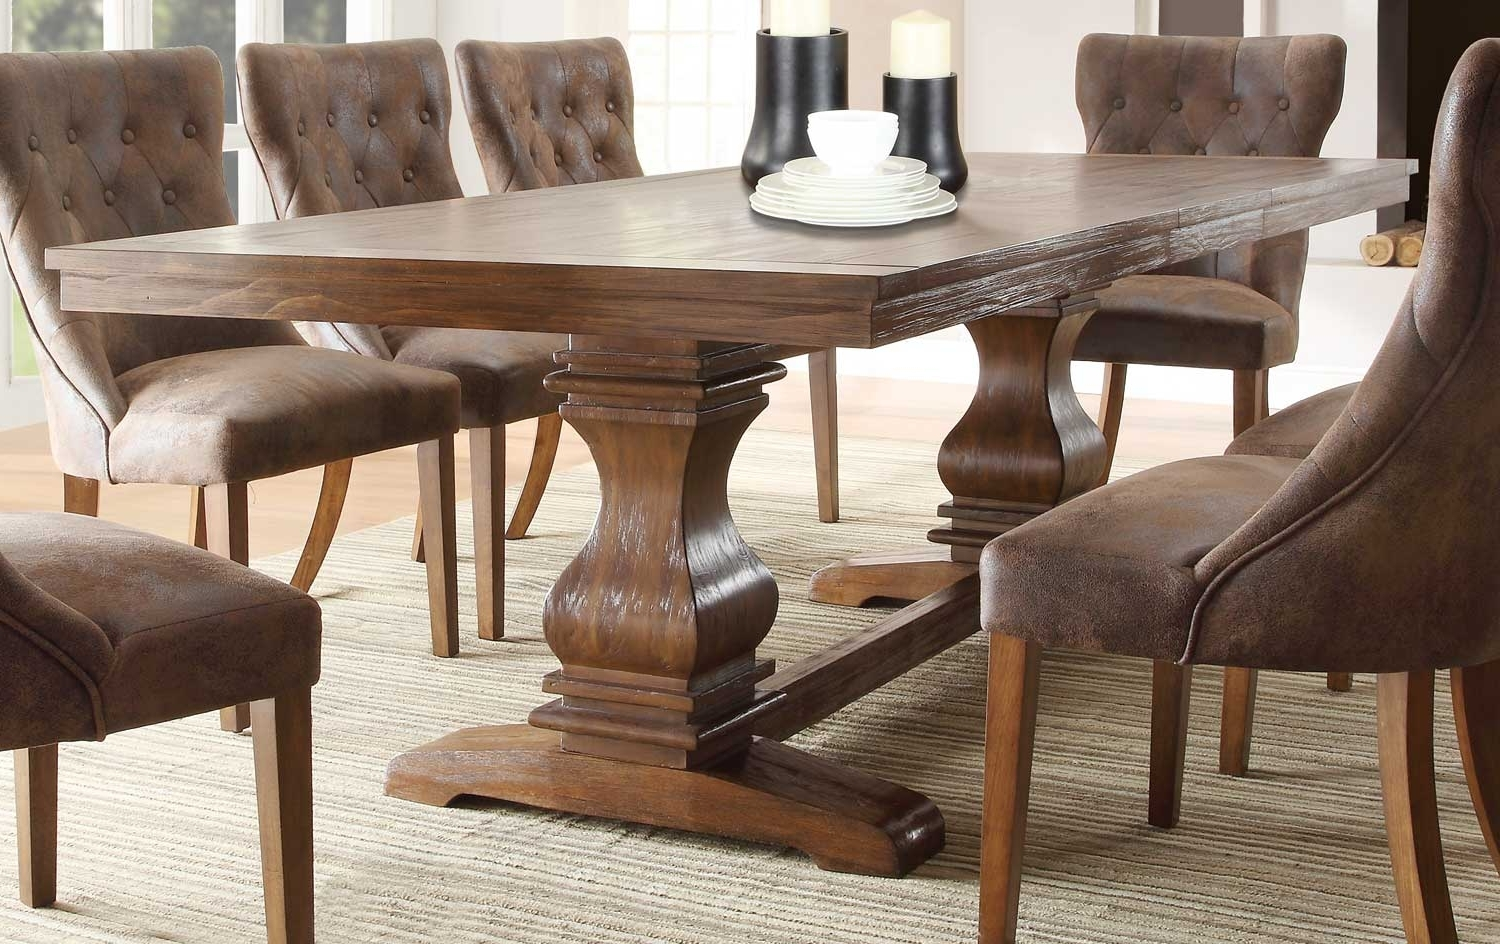 Homelegance Marie Louise Dining Table – Rustic Oak Brown 2526 96 Pertaining To Well Known Rustic Dining Tables (View 2 of 25)